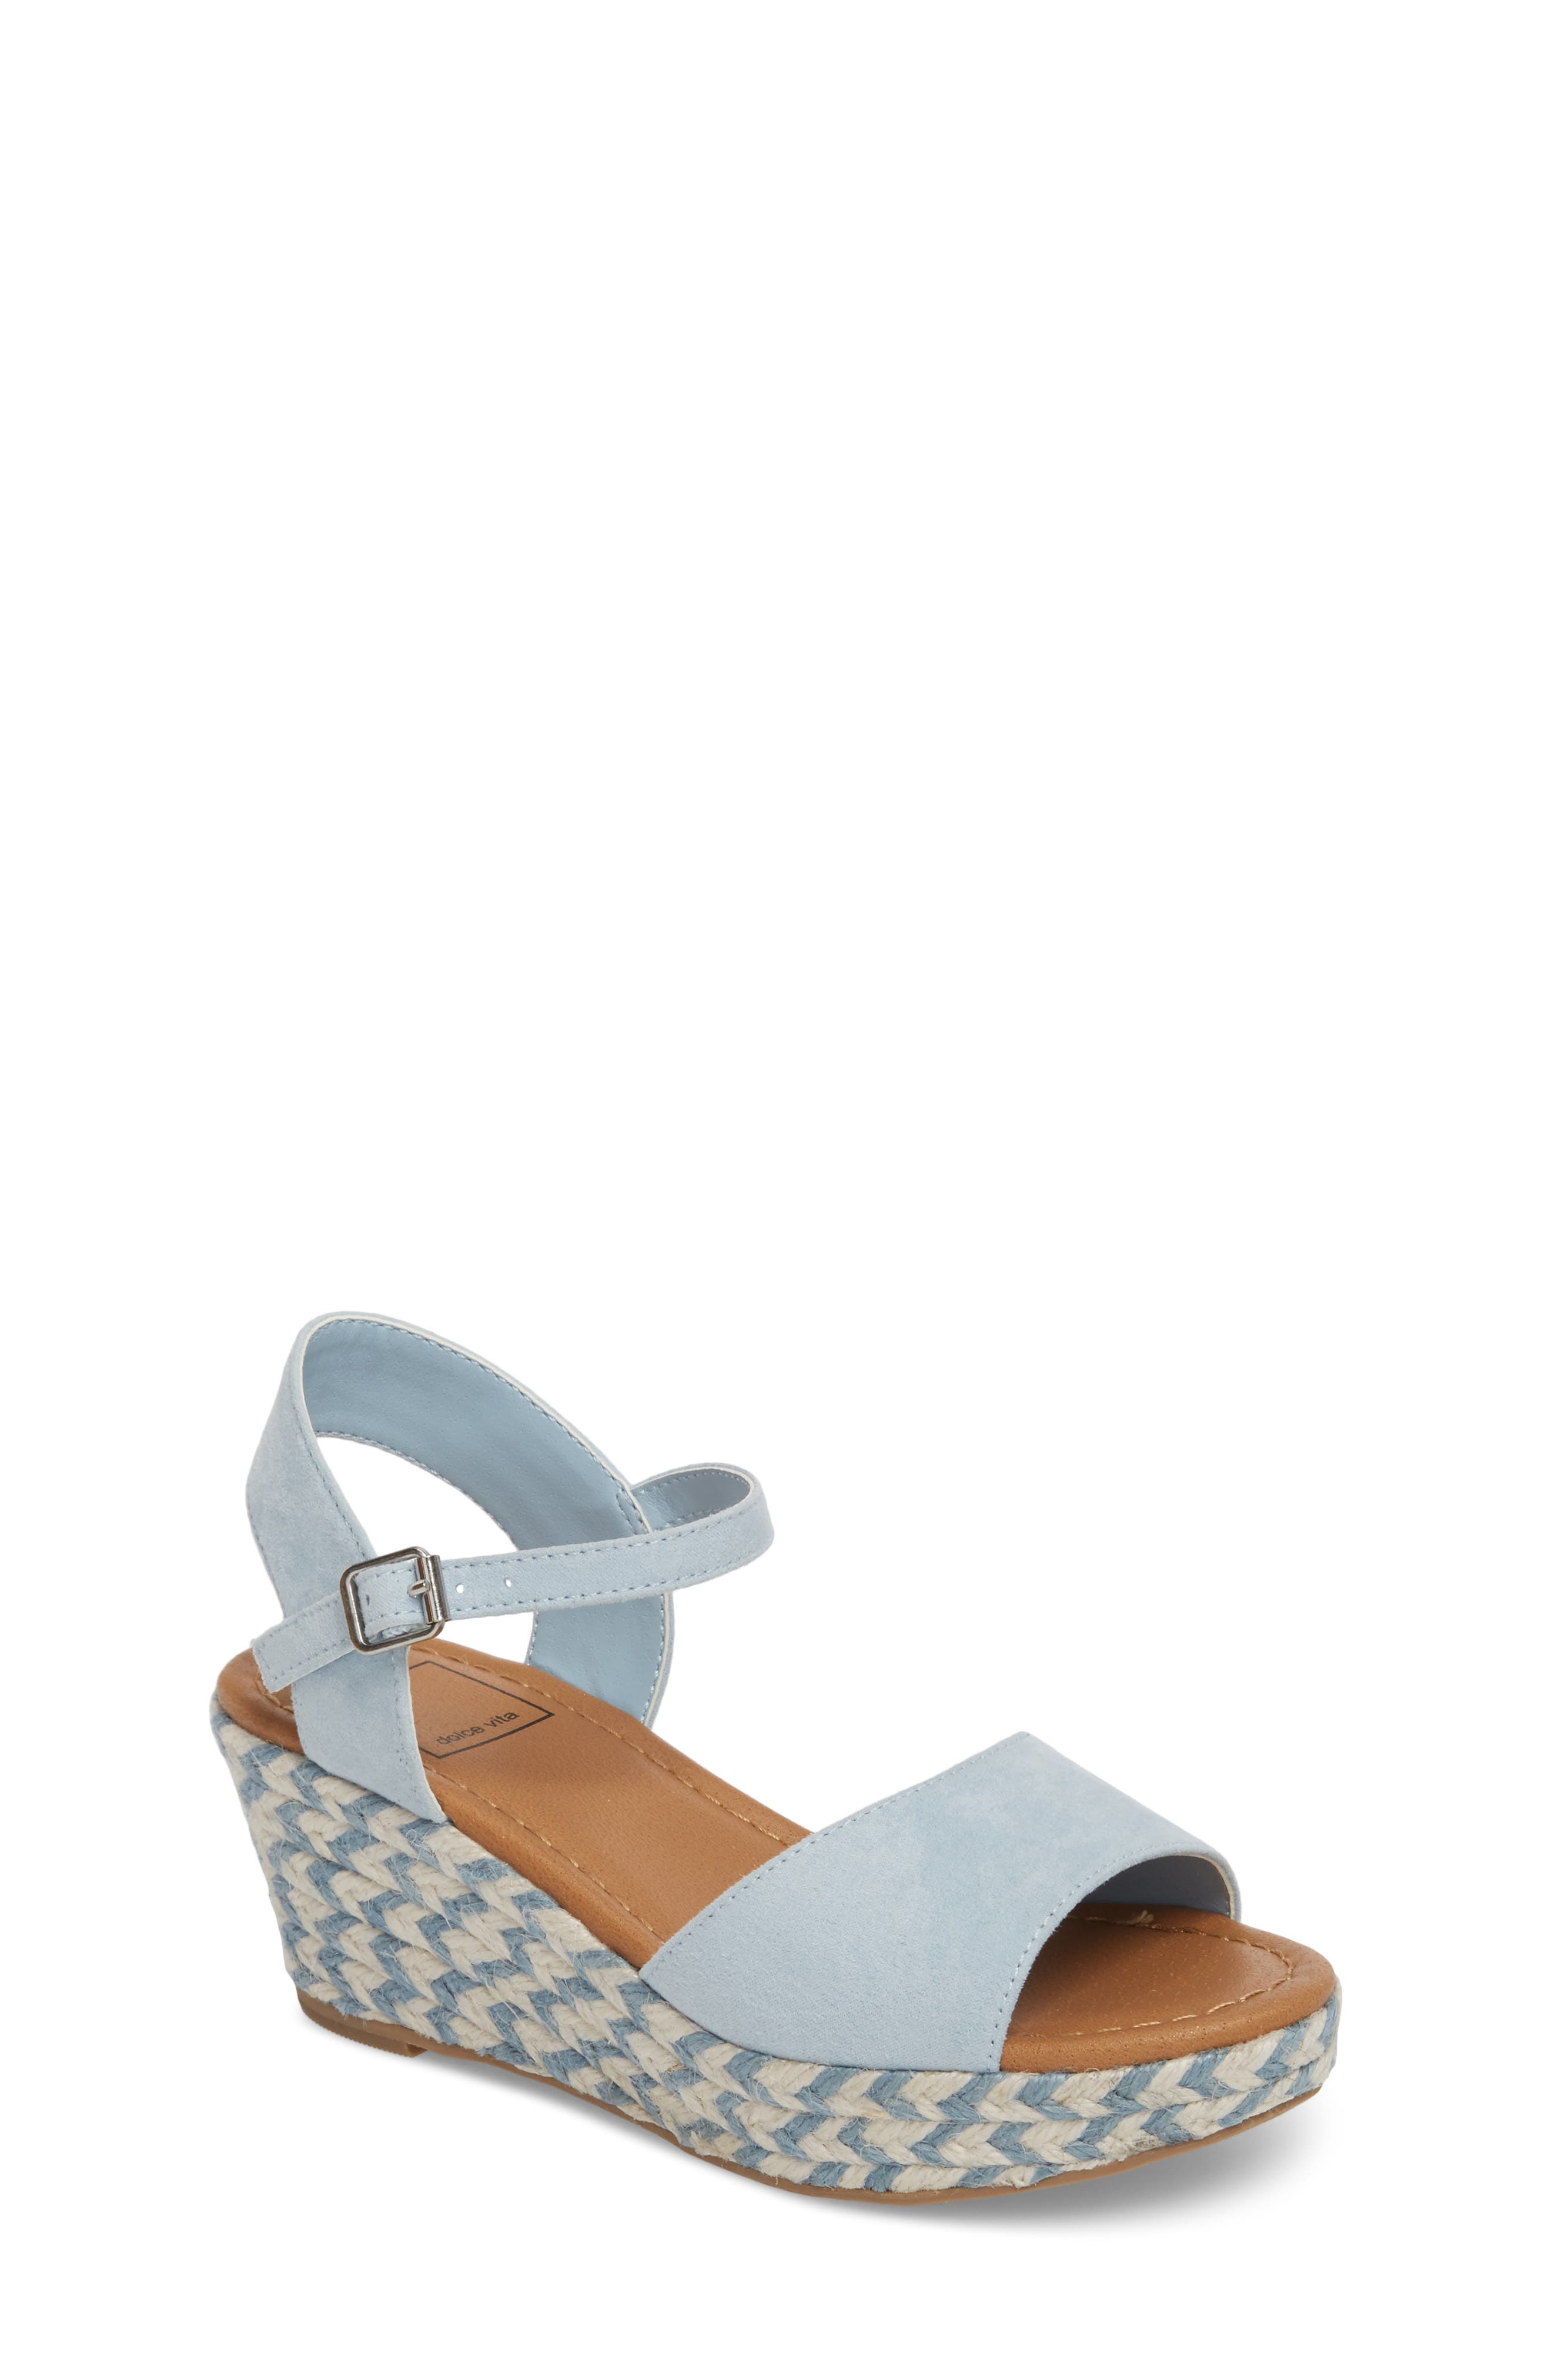 Dolce Vita Wendy Espadrille Wedge Sandal (Toddler, Little Kid & Big Kid)